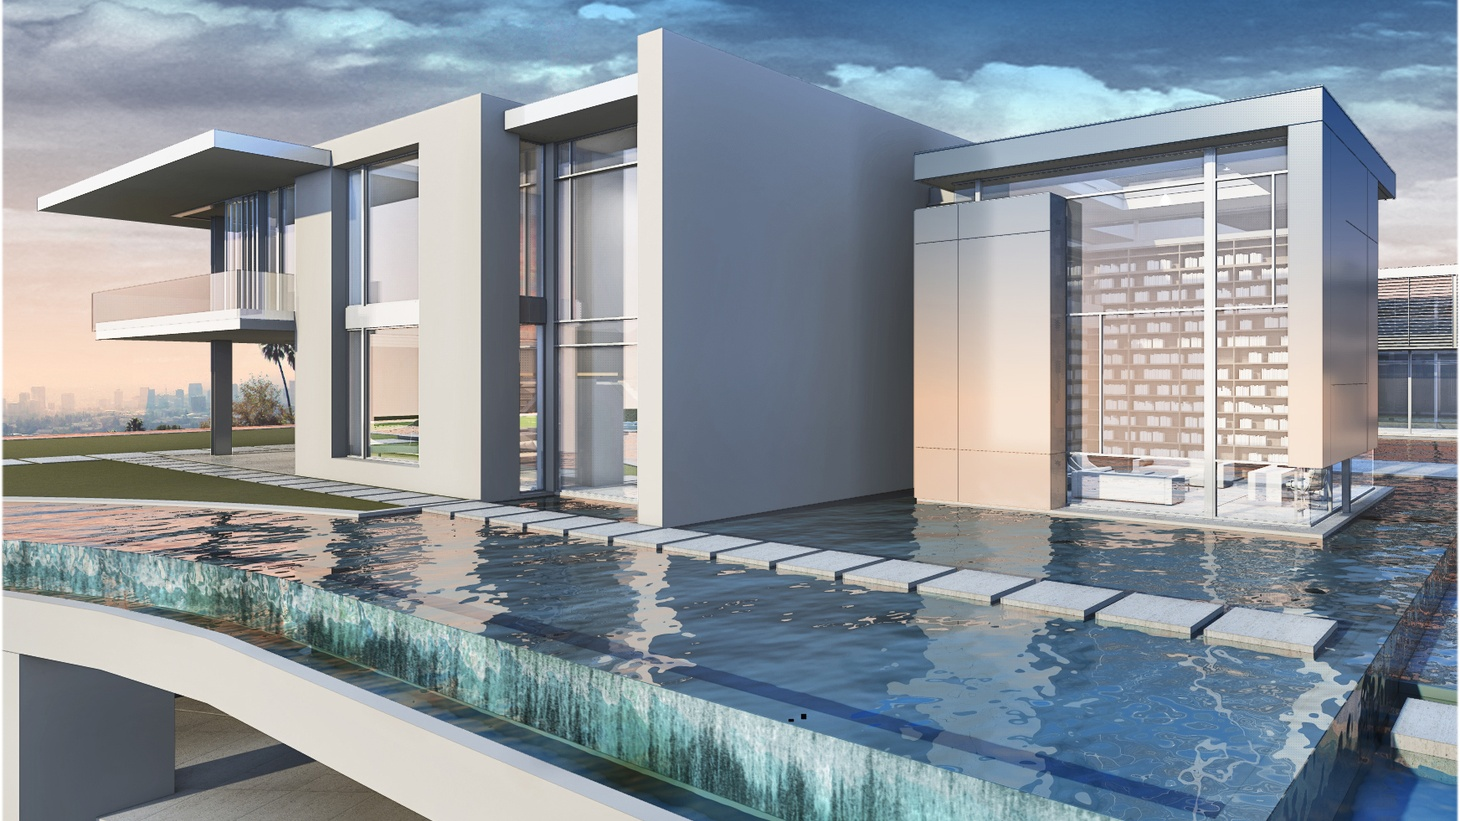 "DnA visits The One, a ""gigamansion"" under construction in Bel Air with a record- breaking price tag of $500 million. And we'll compare the opulent homes of the first Gilded Age with the sleek glass boxes of what may be a new Gilded Age."